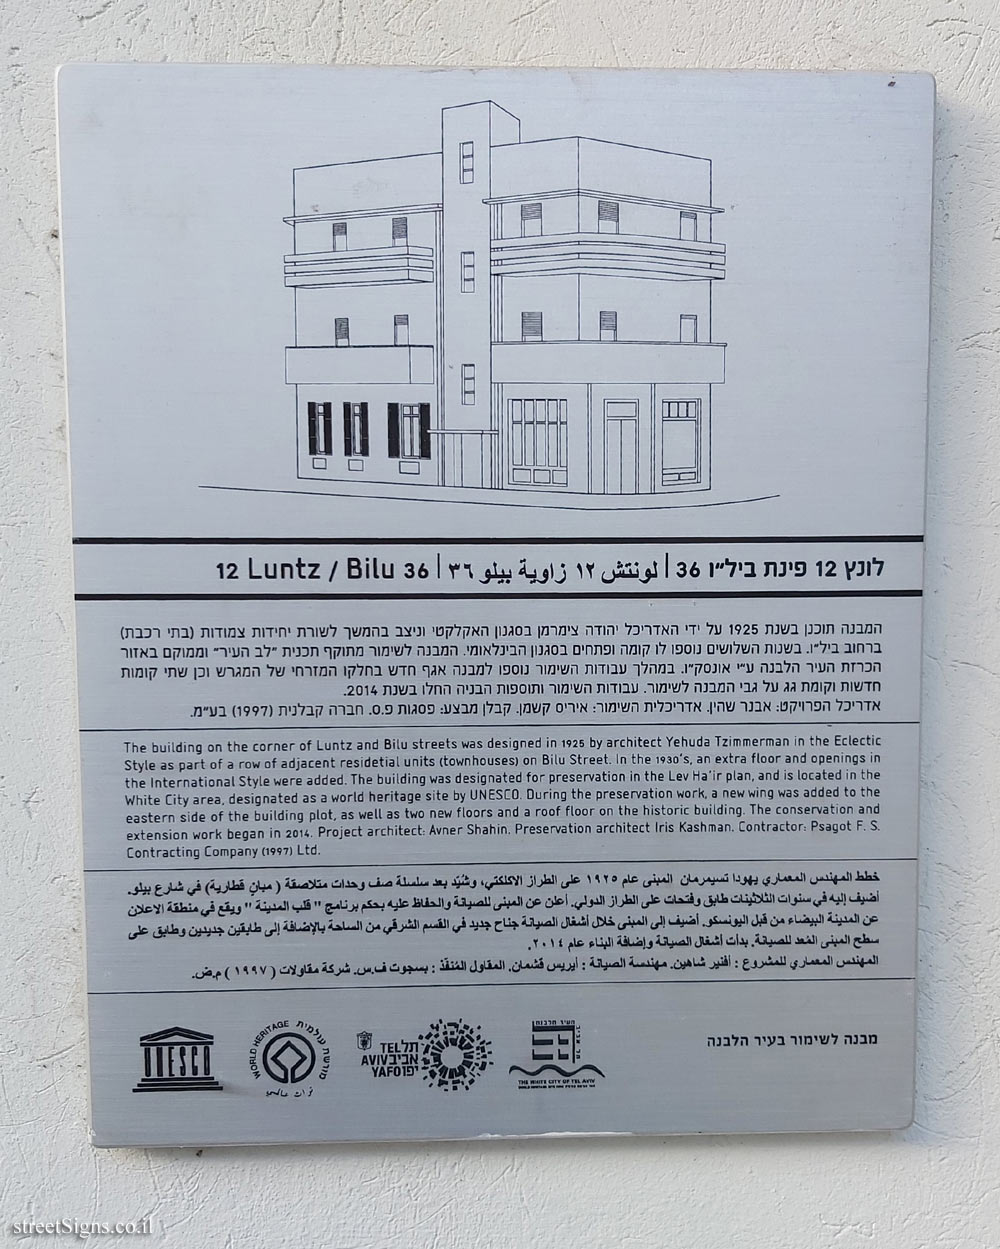 Tel Aviv - buildings for conservation - 12 Lunz / Bilu 36